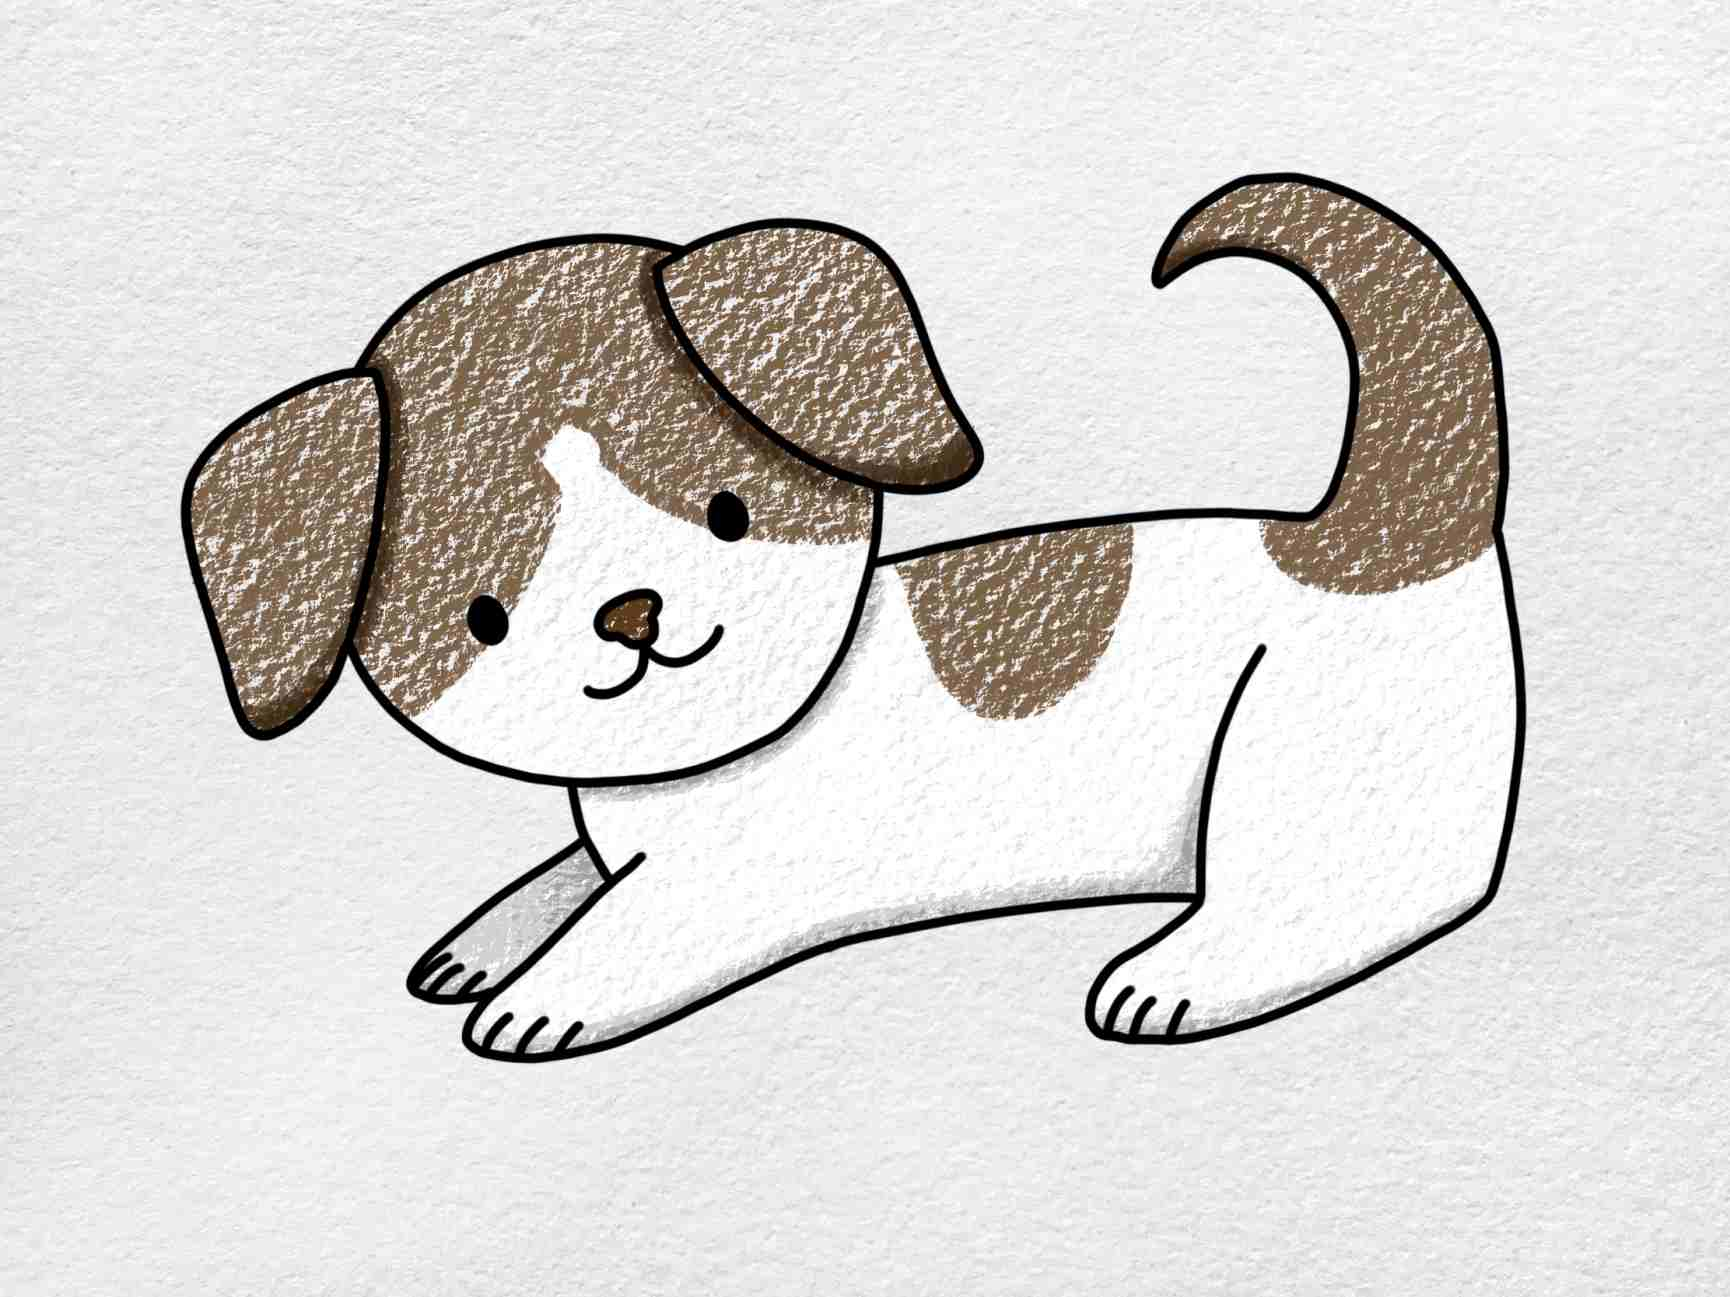 How To Draw A Puppy Step By Step: Step 6